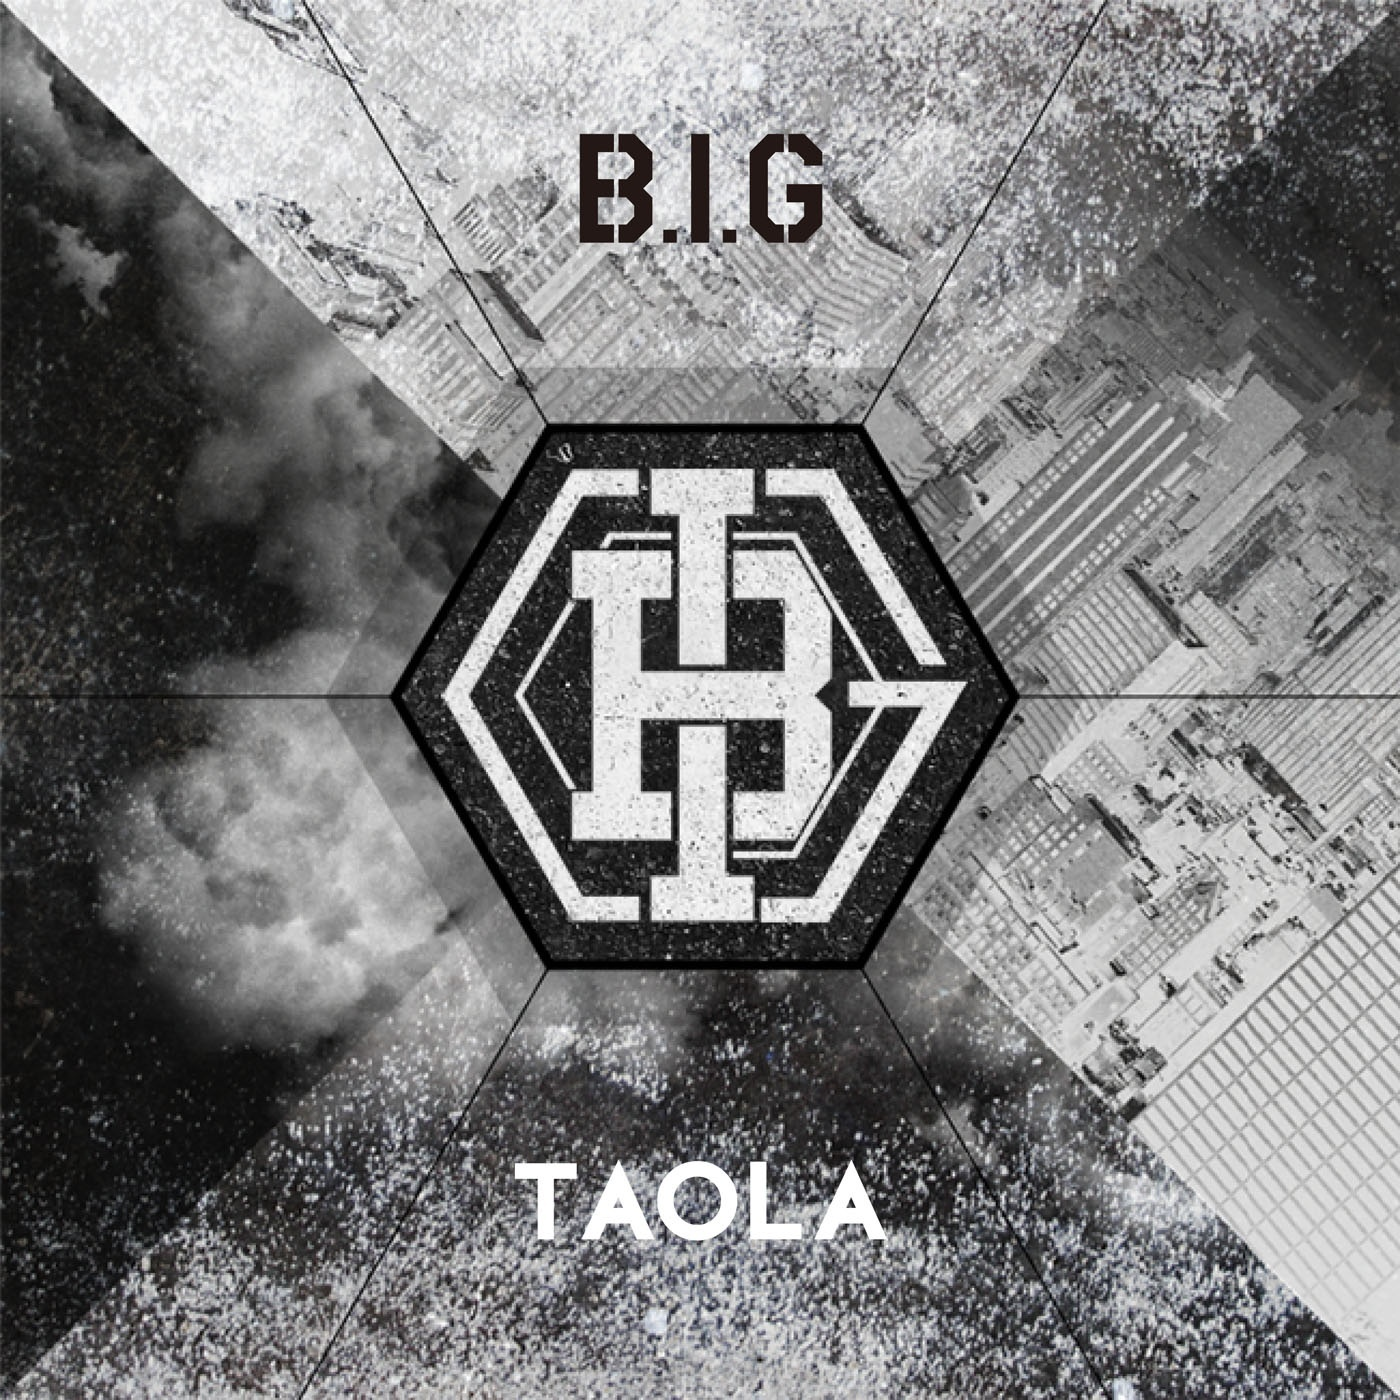 B.I.G - BIG Transformer - Taola K2Ost free mp3 download korean song kpop kdrama ost lyric 320 kbps